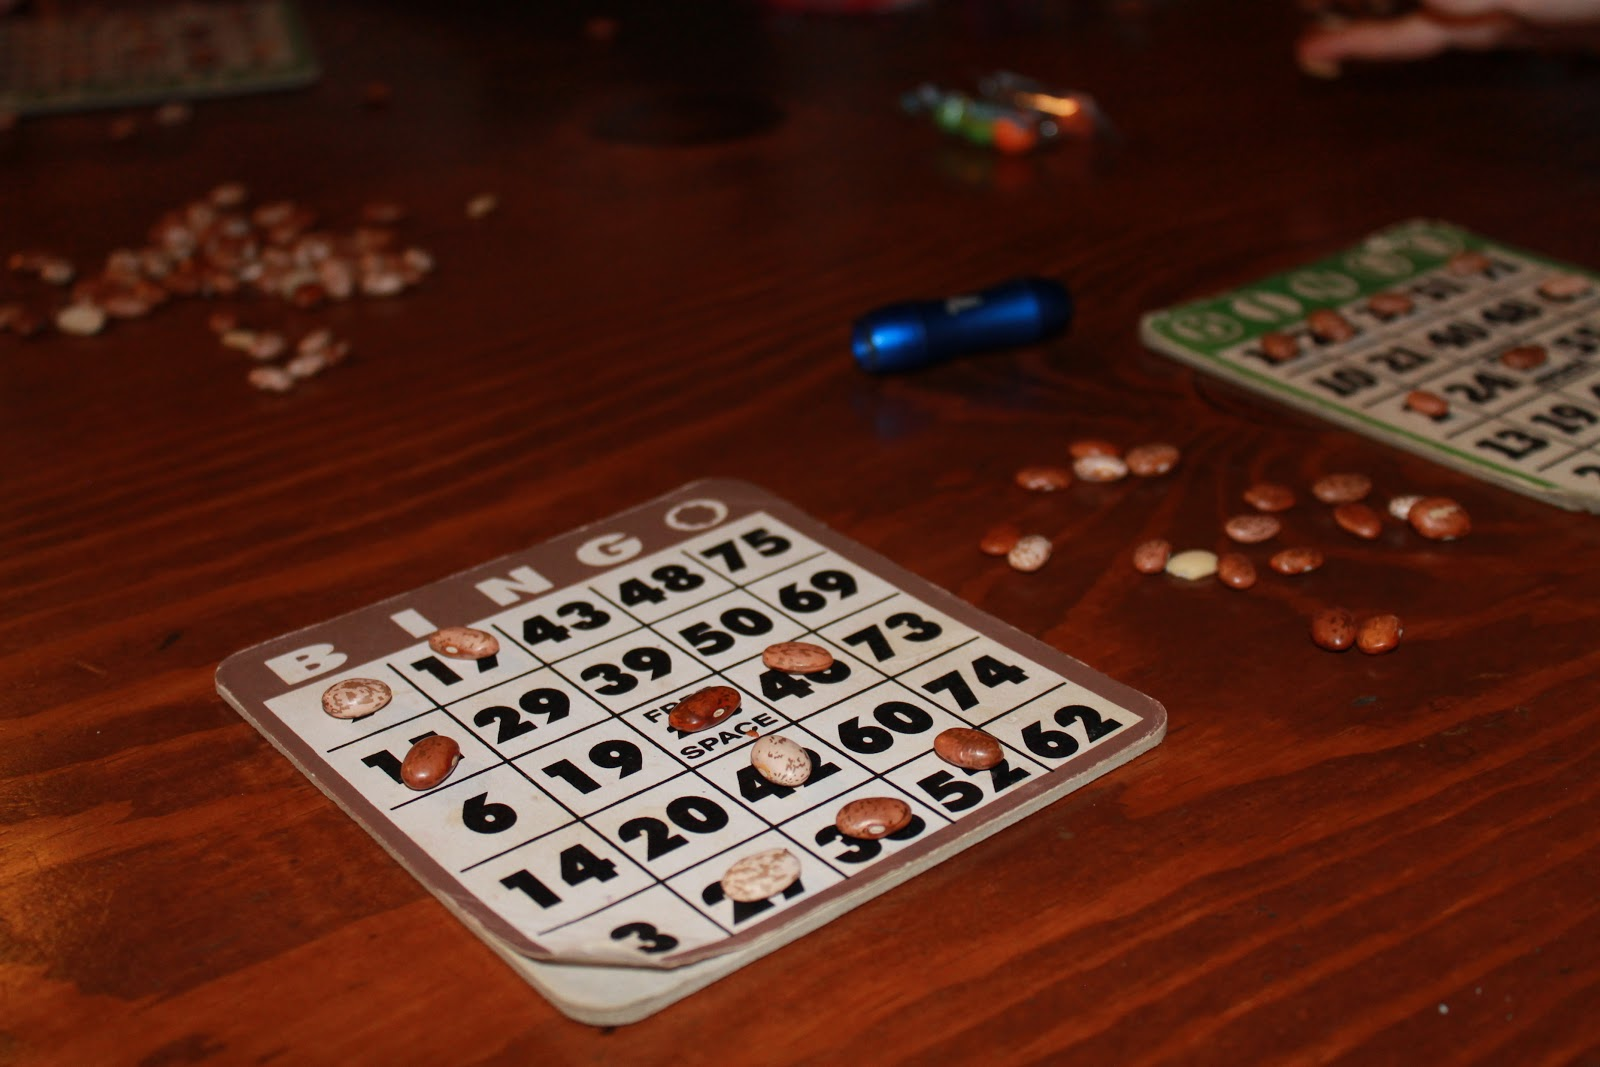 A fun way to play bingo without having to throw away your cards - use beans for markers!